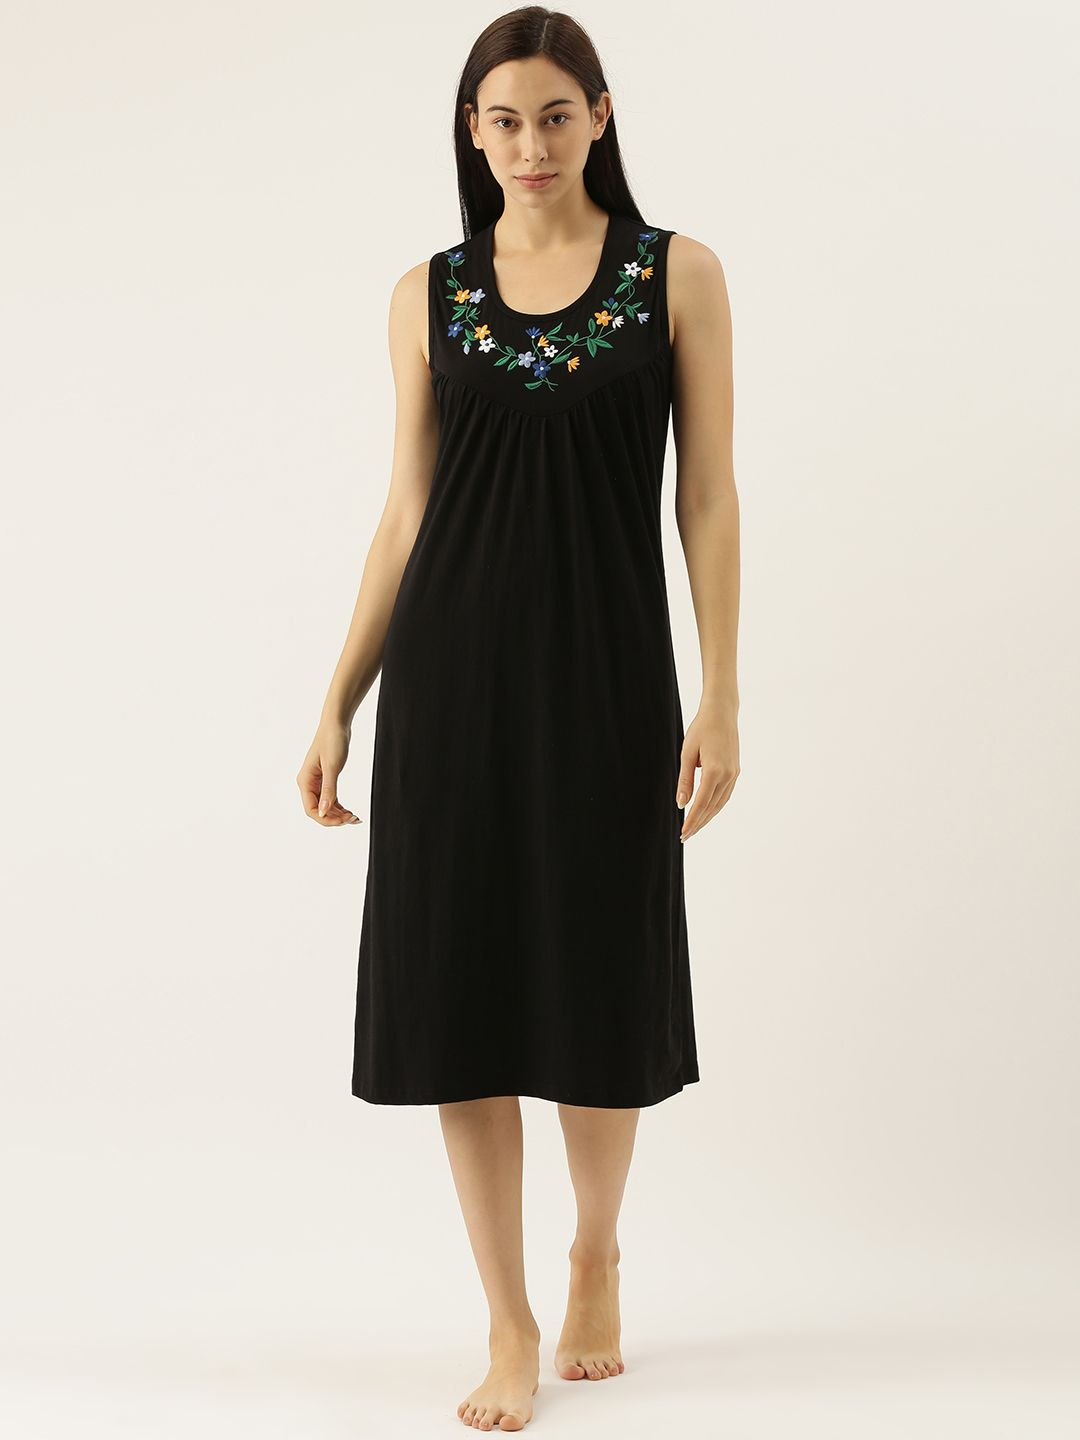 Black Sleeveless Night Dress with Delicate Flower Embroidery